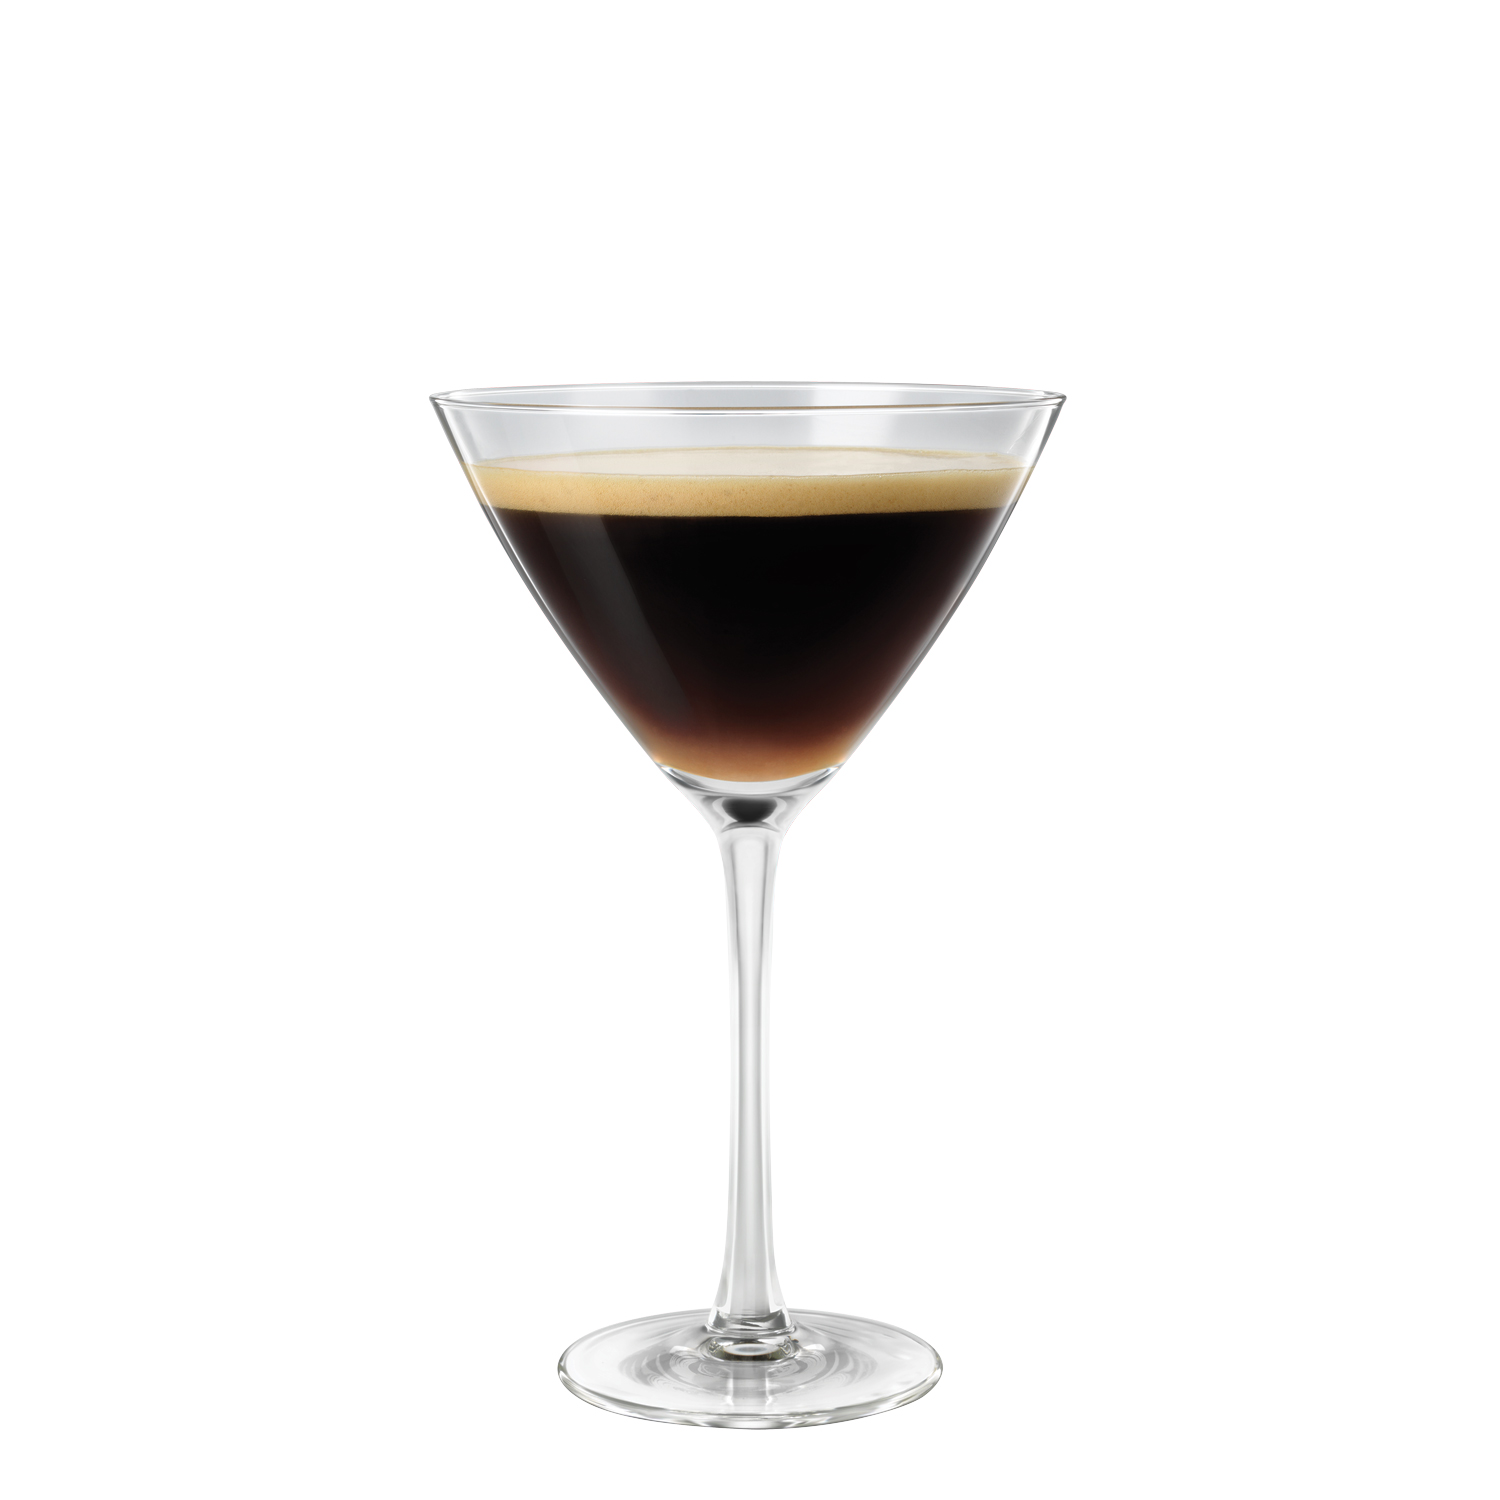 Holiday Drink Recipe: Kahlúa Gingerbread Cookie Cocktails